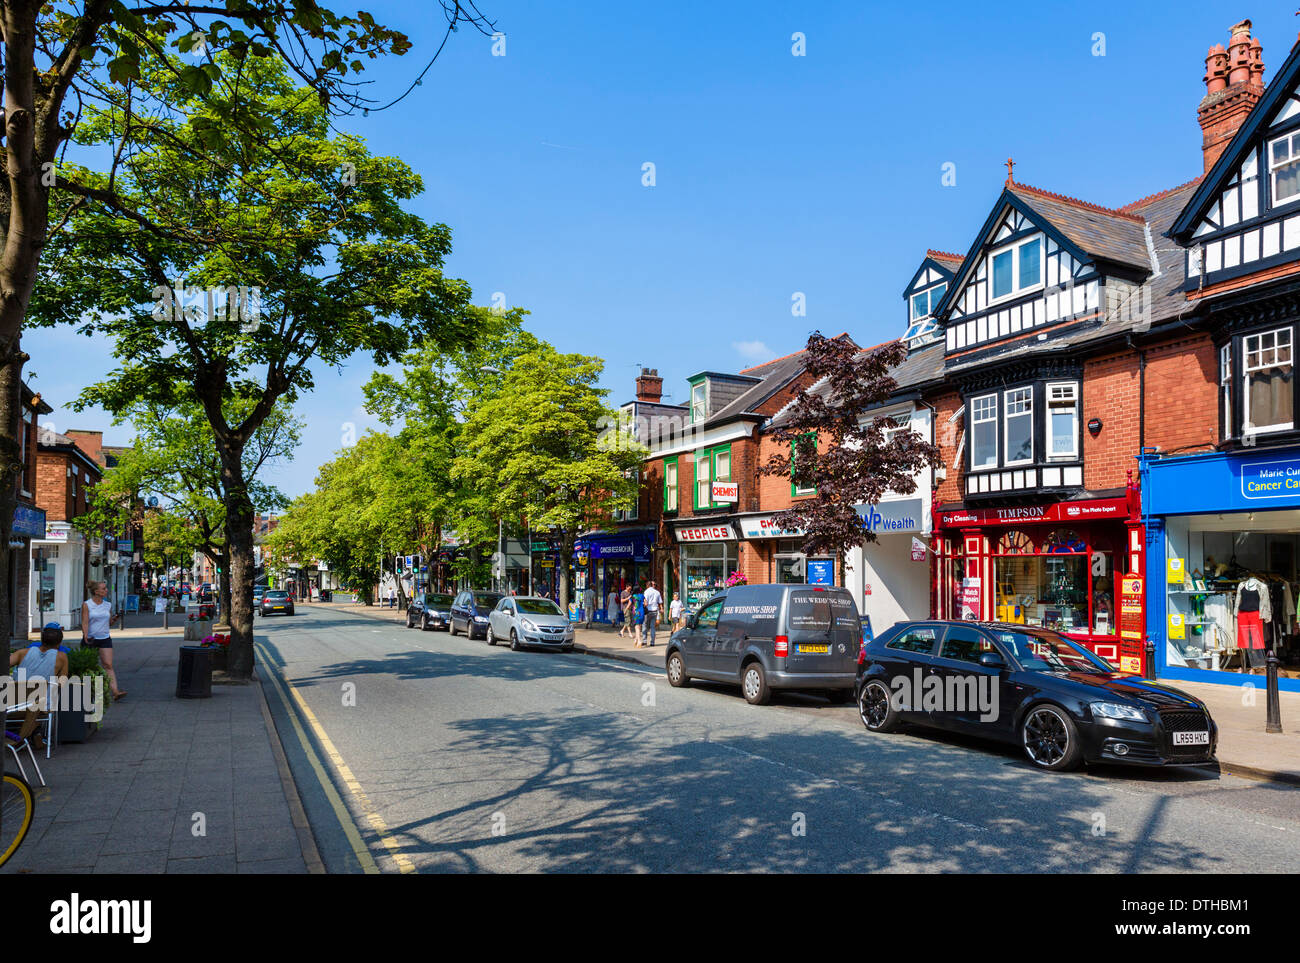 Shops on the High Street ( London Road ) in the village centre, Alderley Edge, Cheshire, England, UK - Stock Image